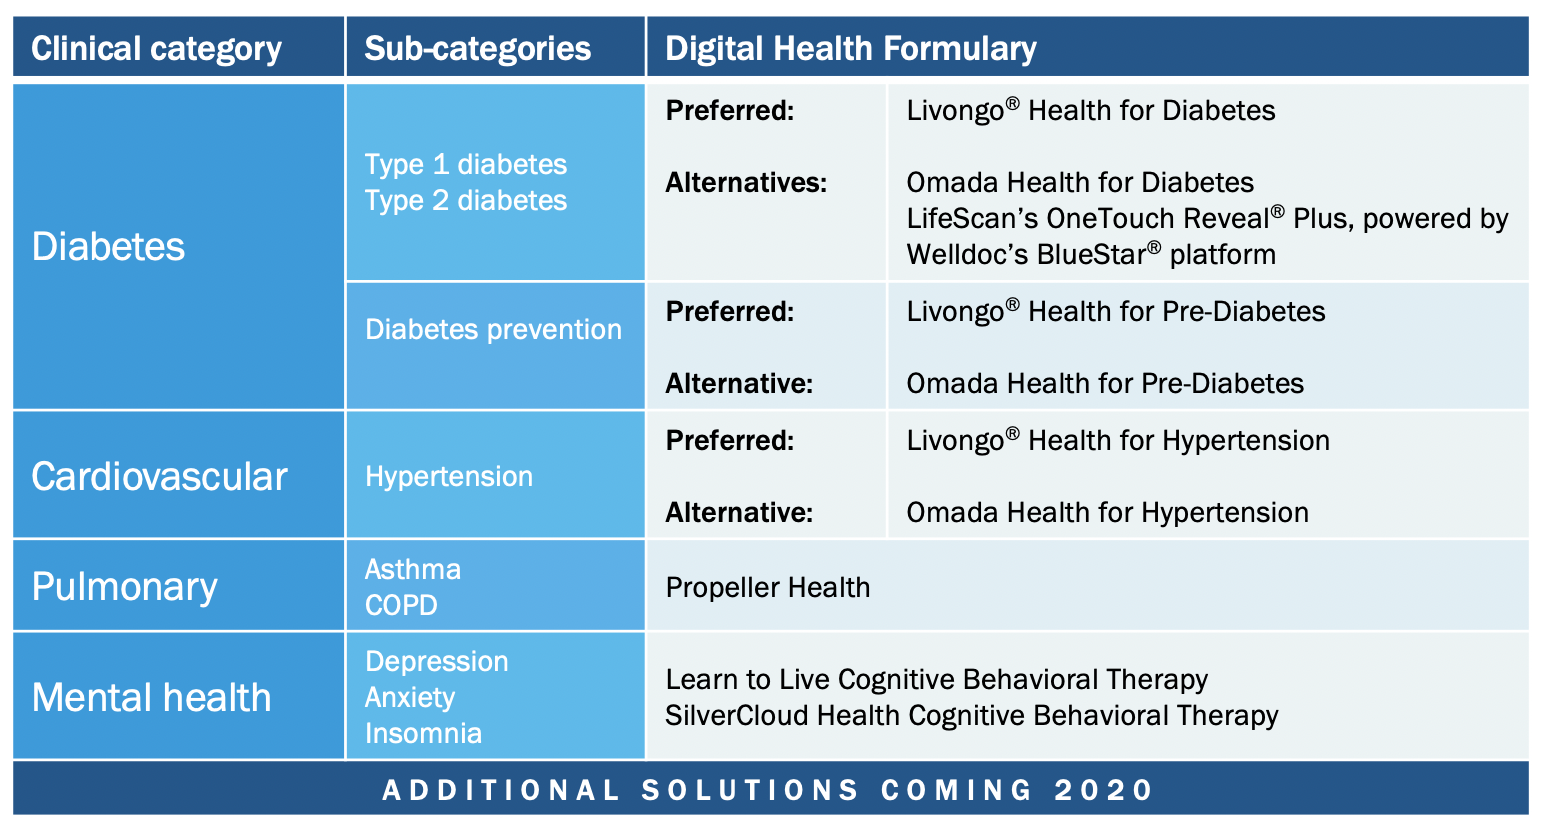 Digital Health Formulary Approved Vendors